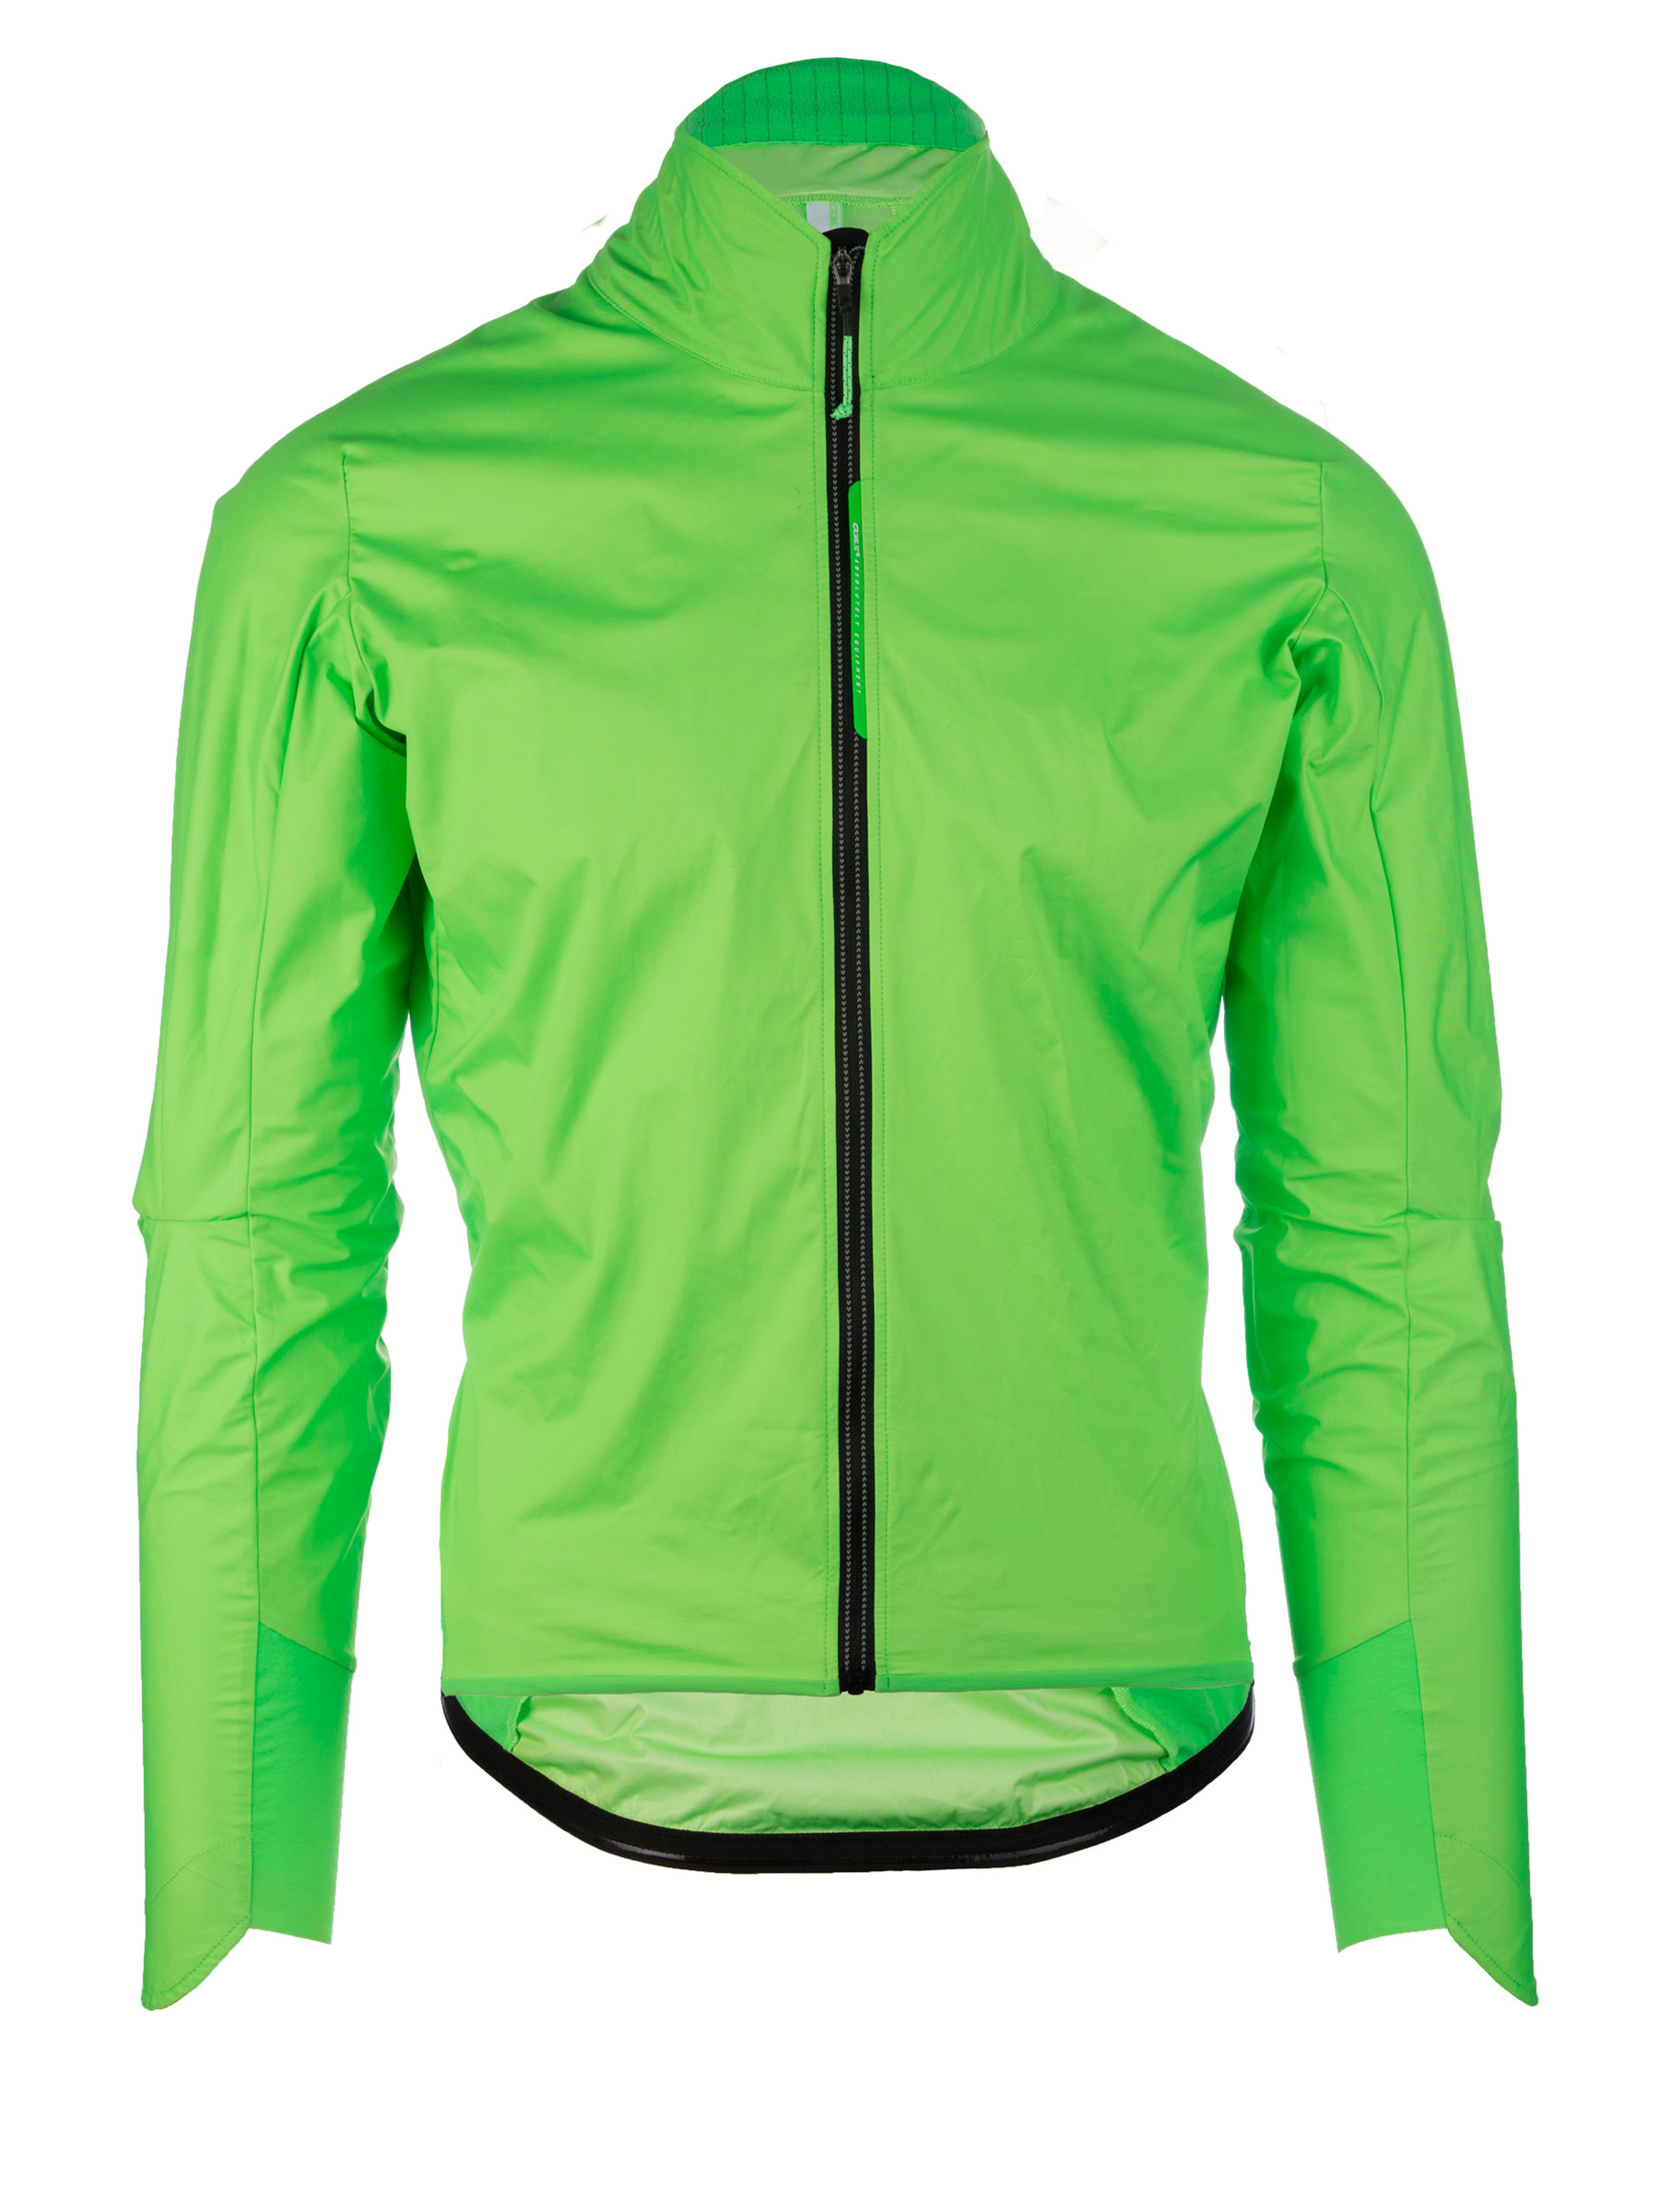 Giacca ciclismo pioggia R.Shell Protection Q36.5 verde fluo